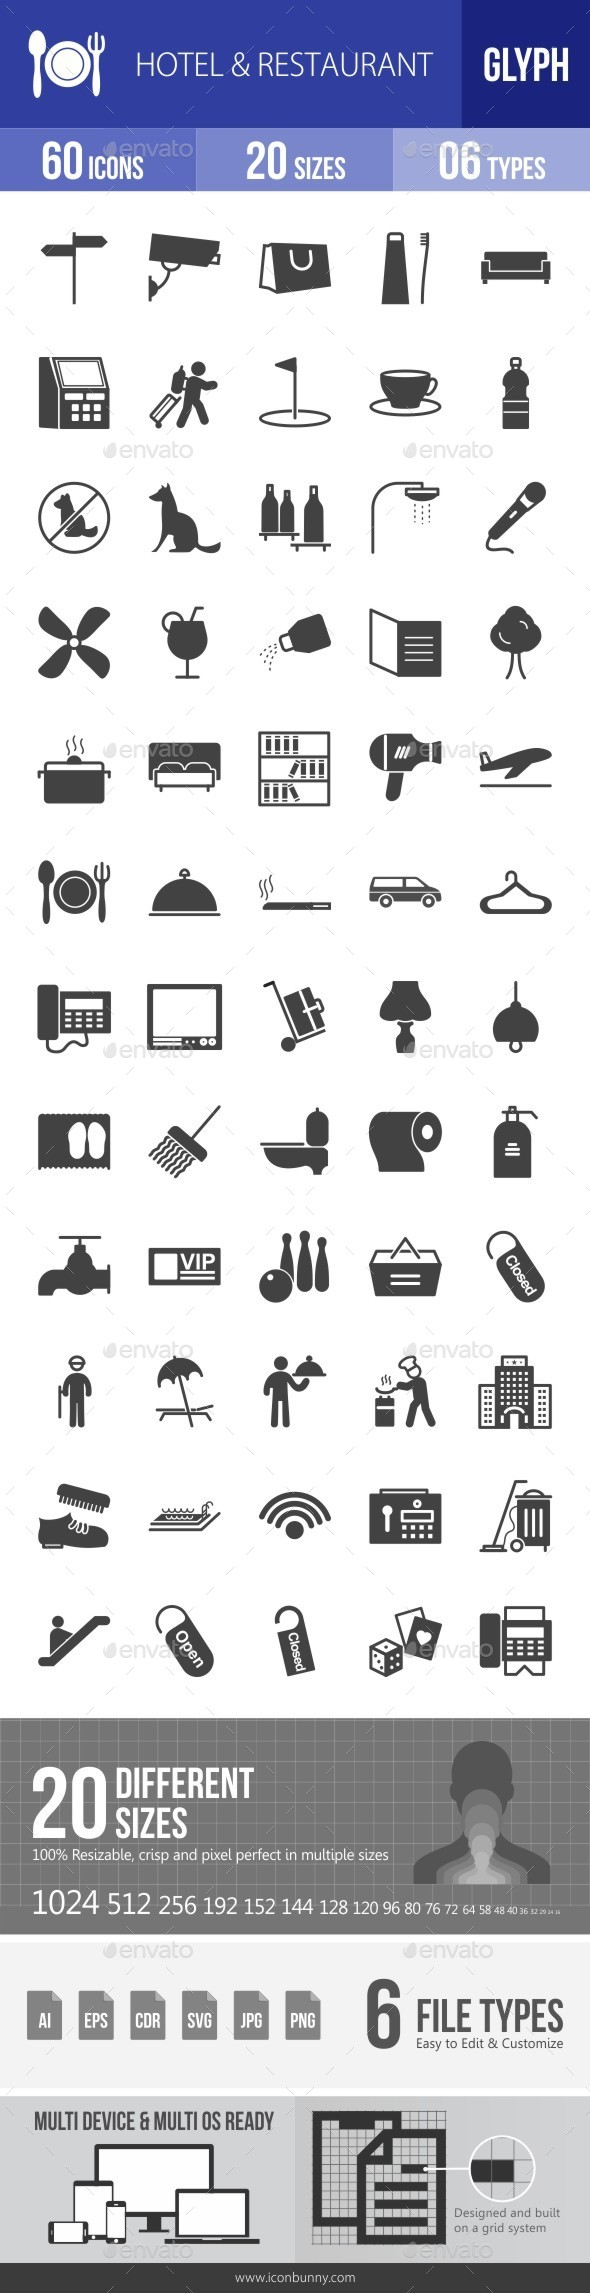 Hotel & Restaurant Glyph Icons - Icons